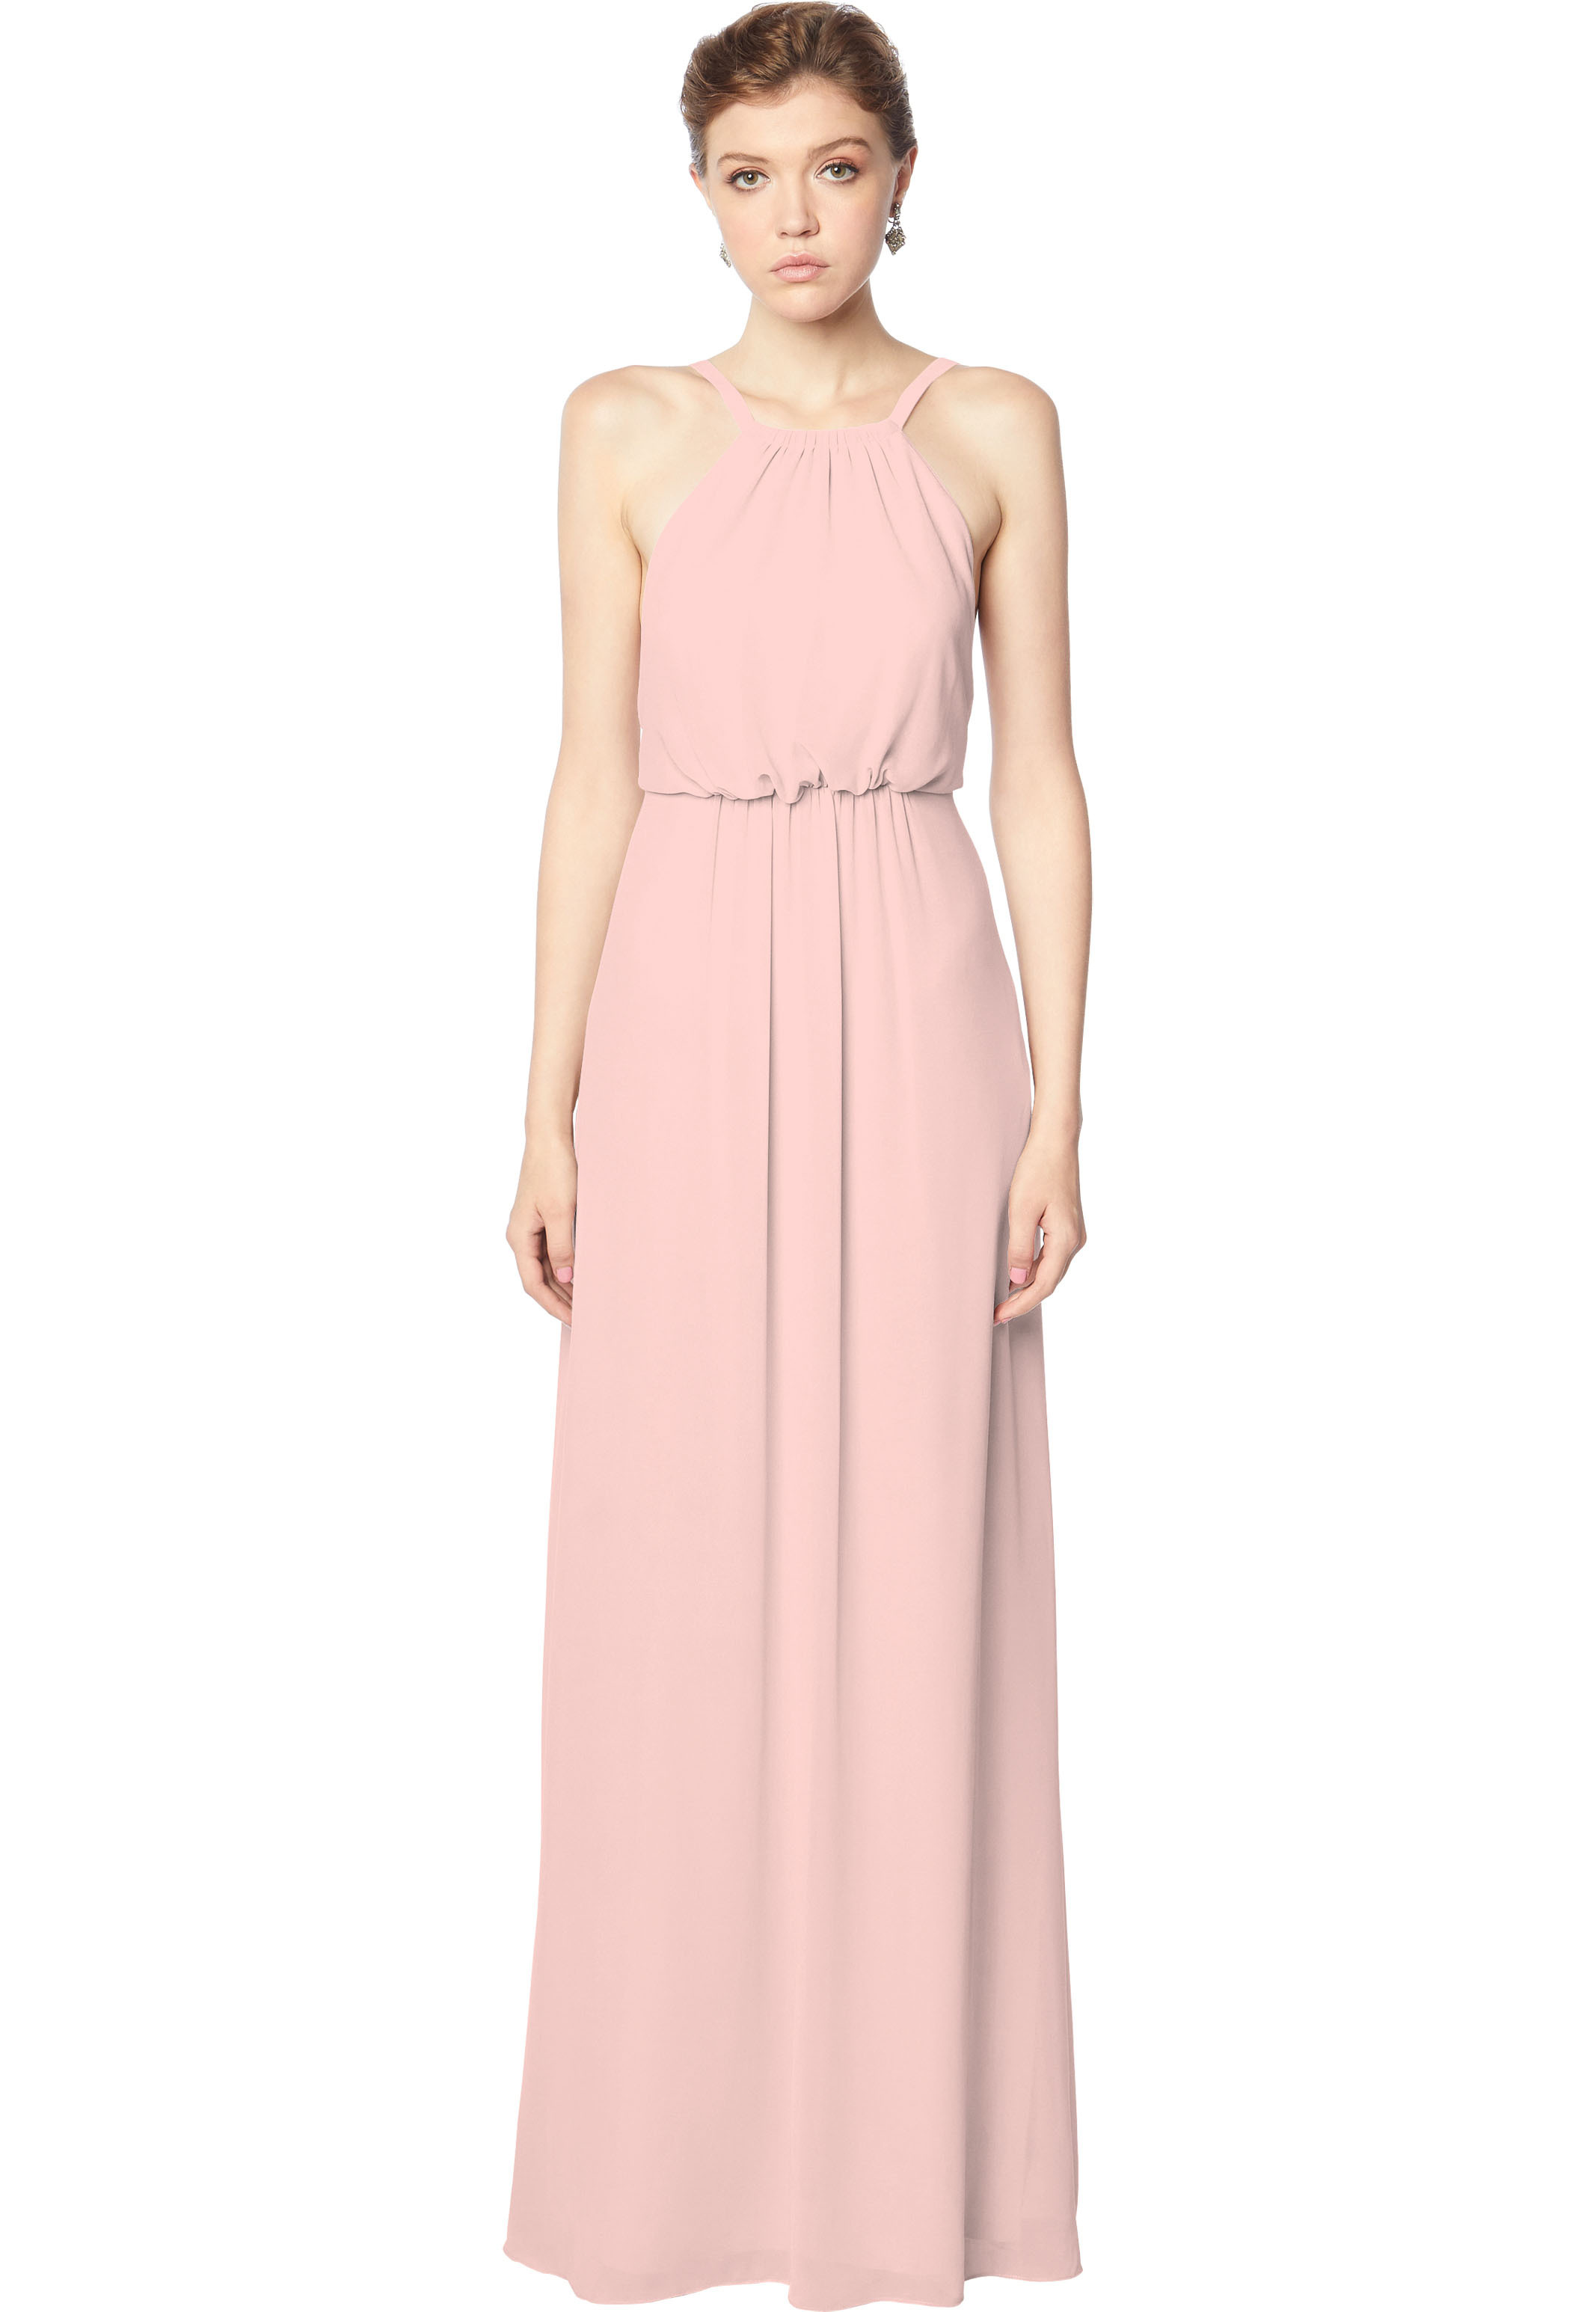 Bill Levkoff FROST ROSE Chiffon Blouson A-line gown, $158.00 Front